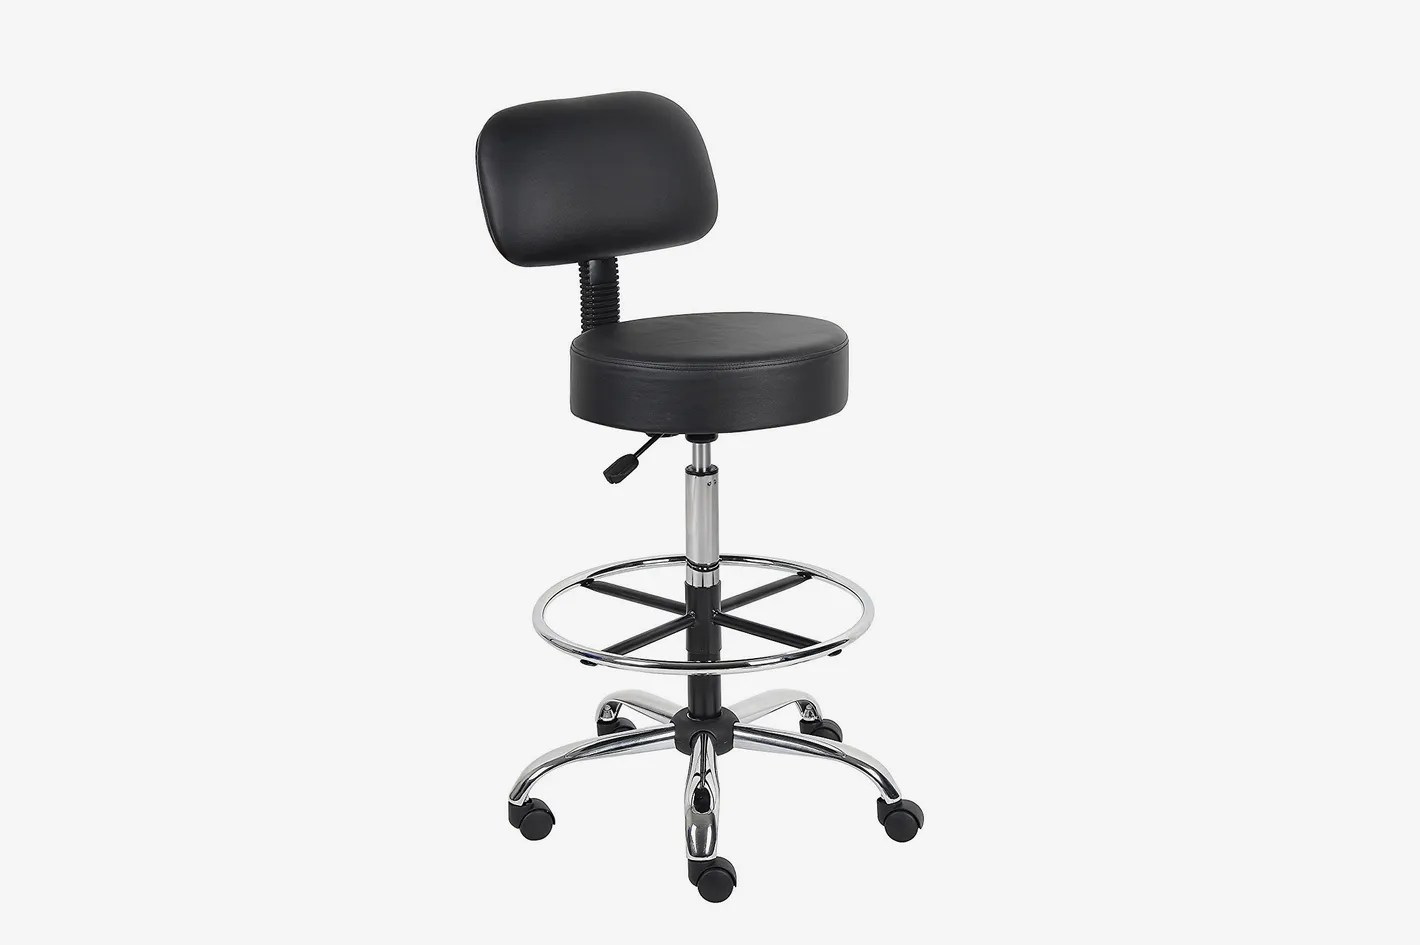 nice chair stool lift chairs for stairs 16 best office and home 2018 drafting standing desks